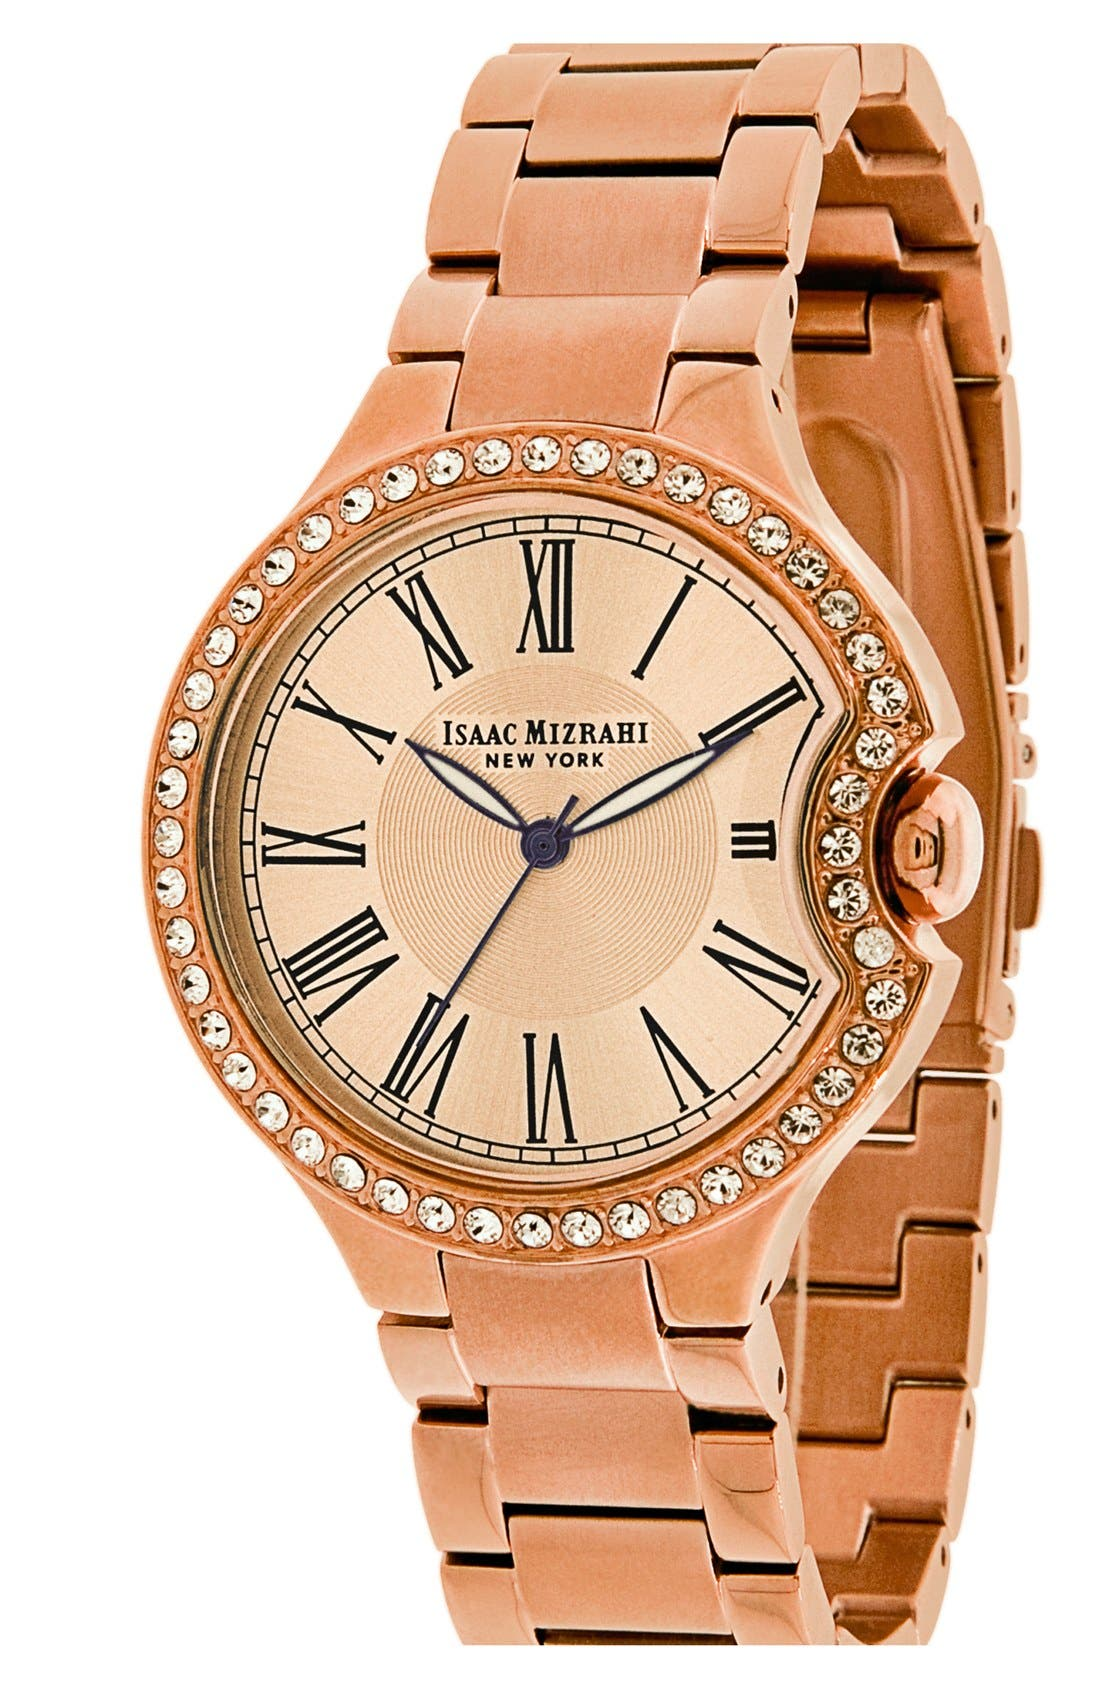 Main Image - Isaac Mizrahi New York Round Roman Numeral Bracelet Watch, 38mm